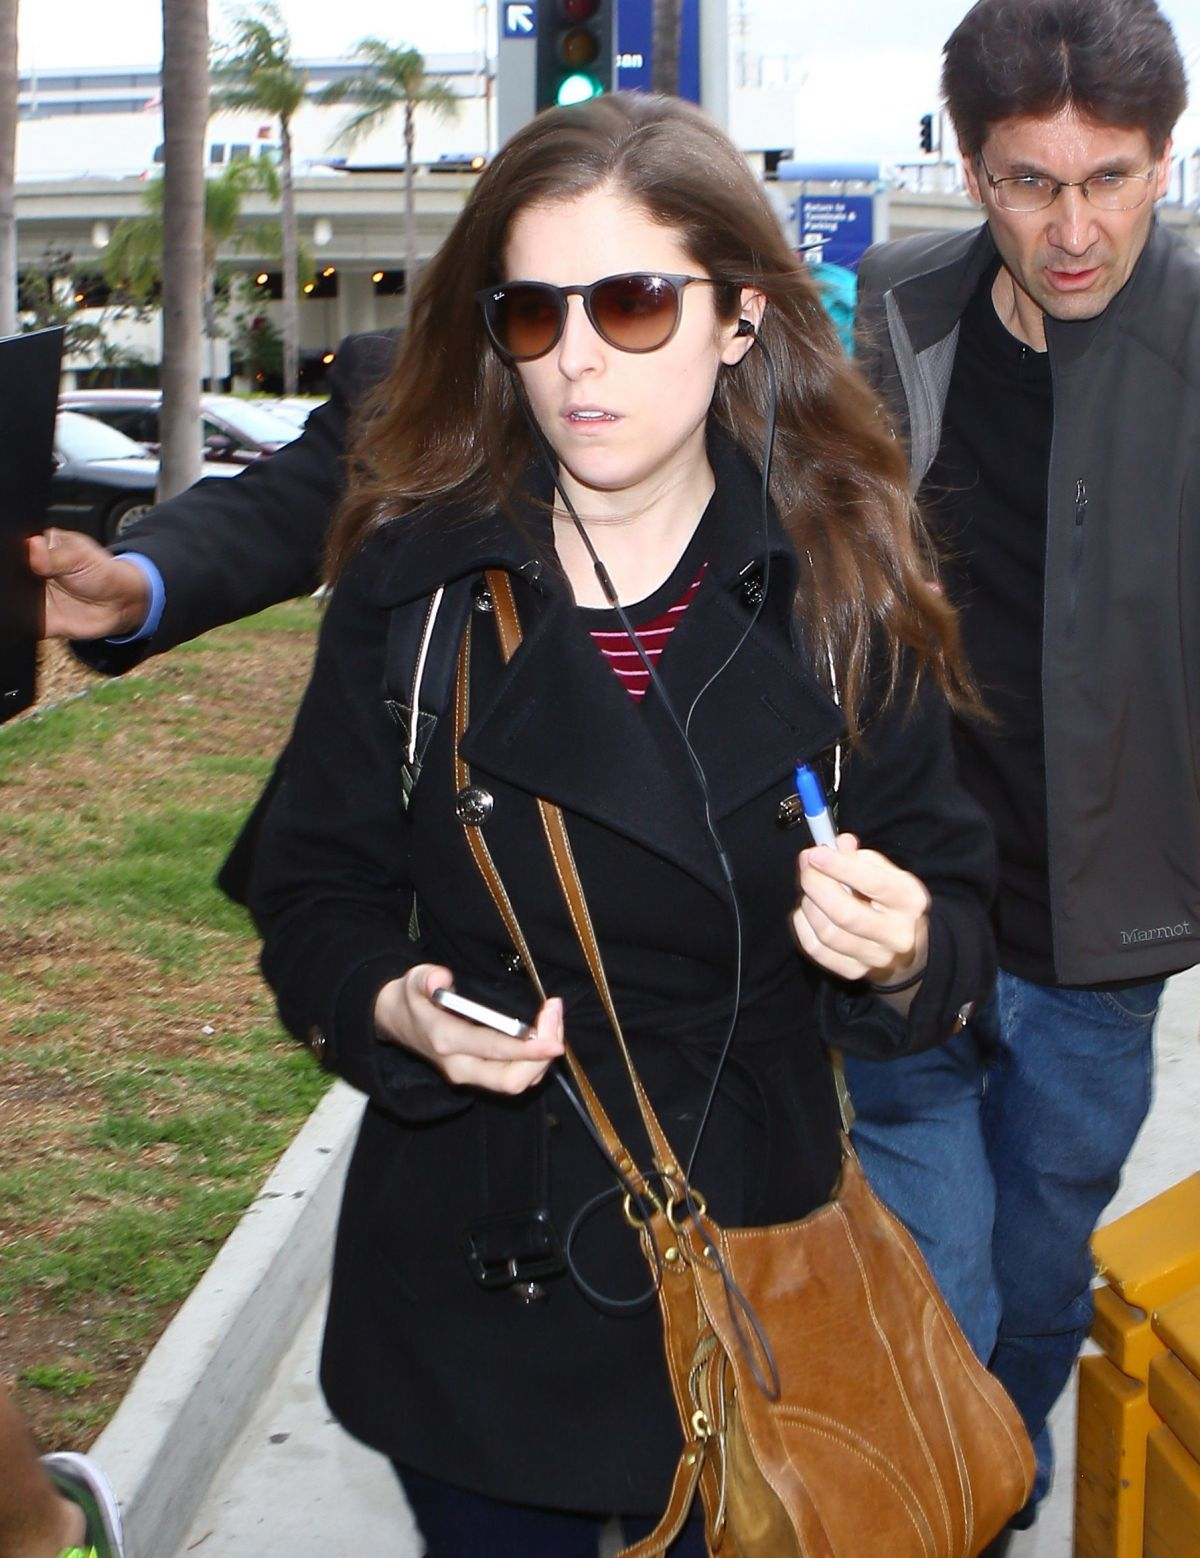 ANNA KENDRICK at Los Angeles International Airport 03/11/2016